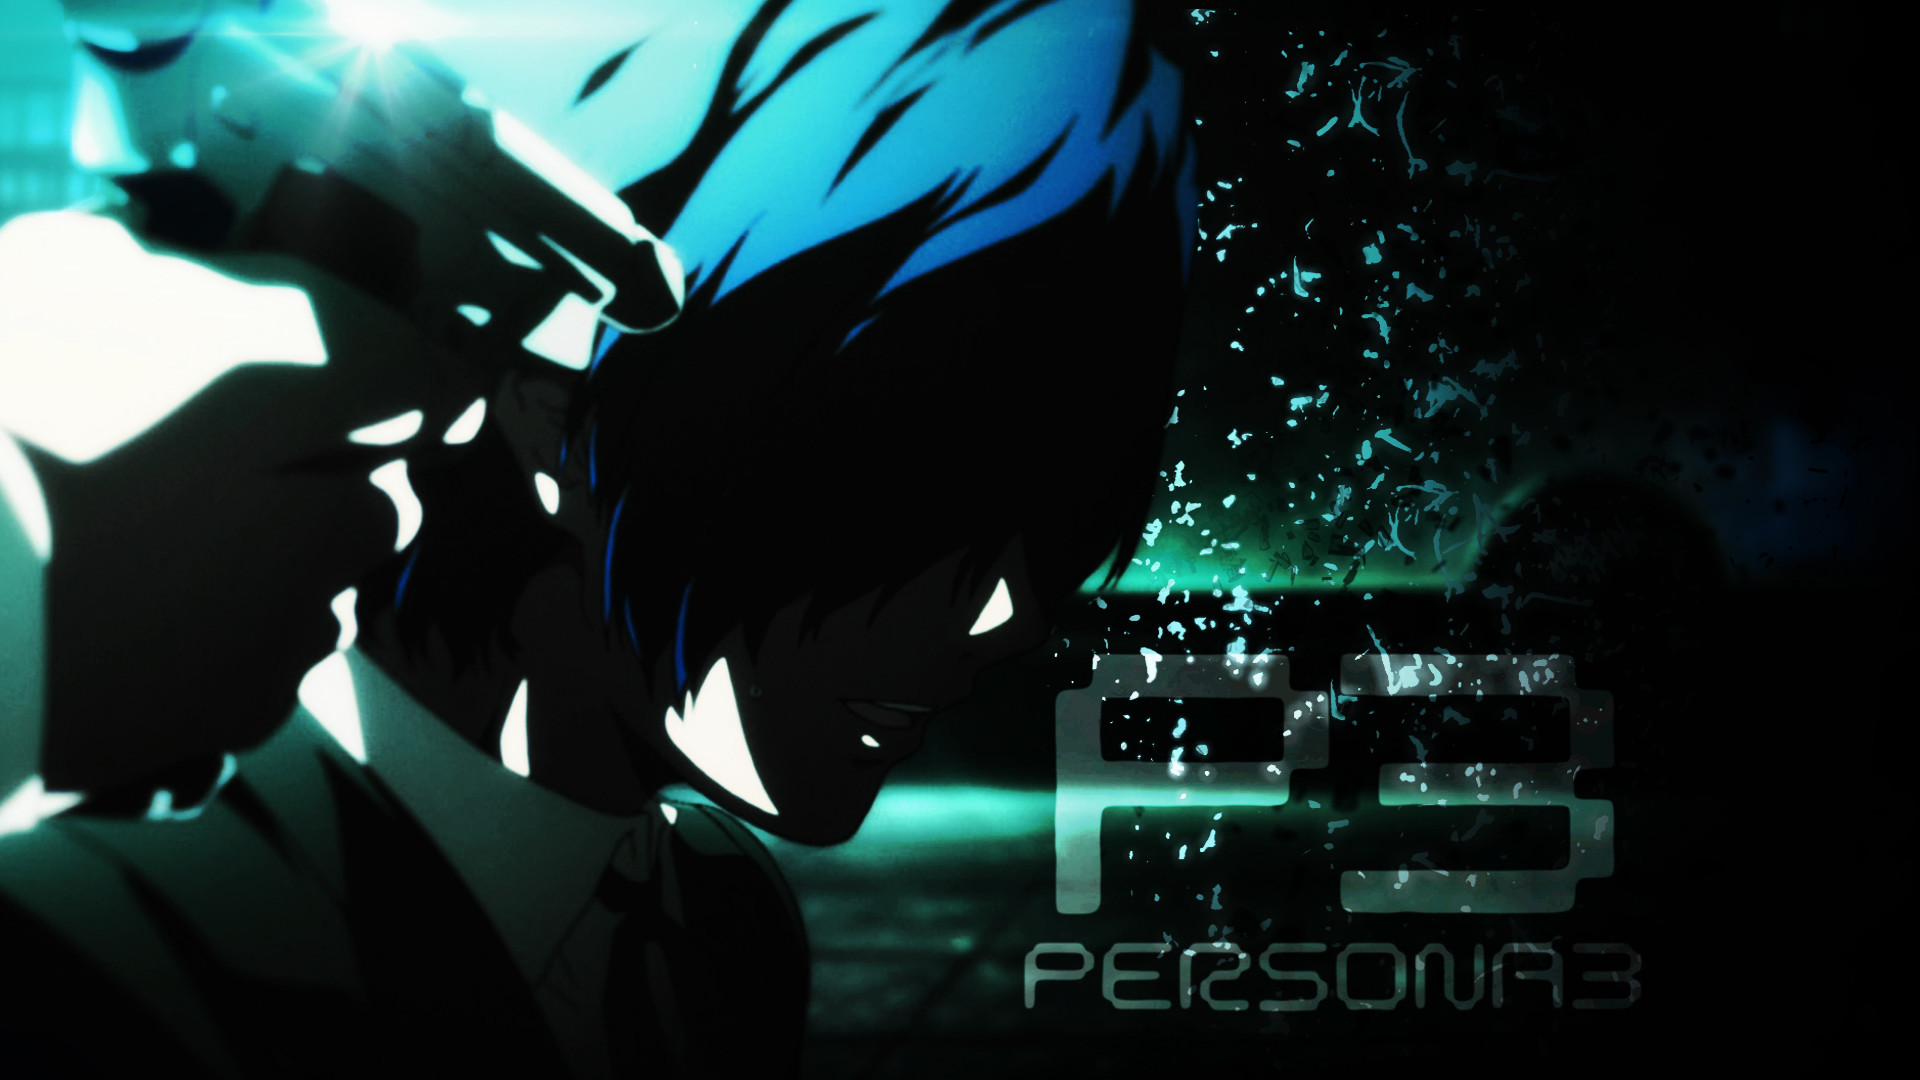 Persona 3 wallpapers 73 images 1920x1080 wallpaper persona 3 fes hd picture pic voltagebd Gallery